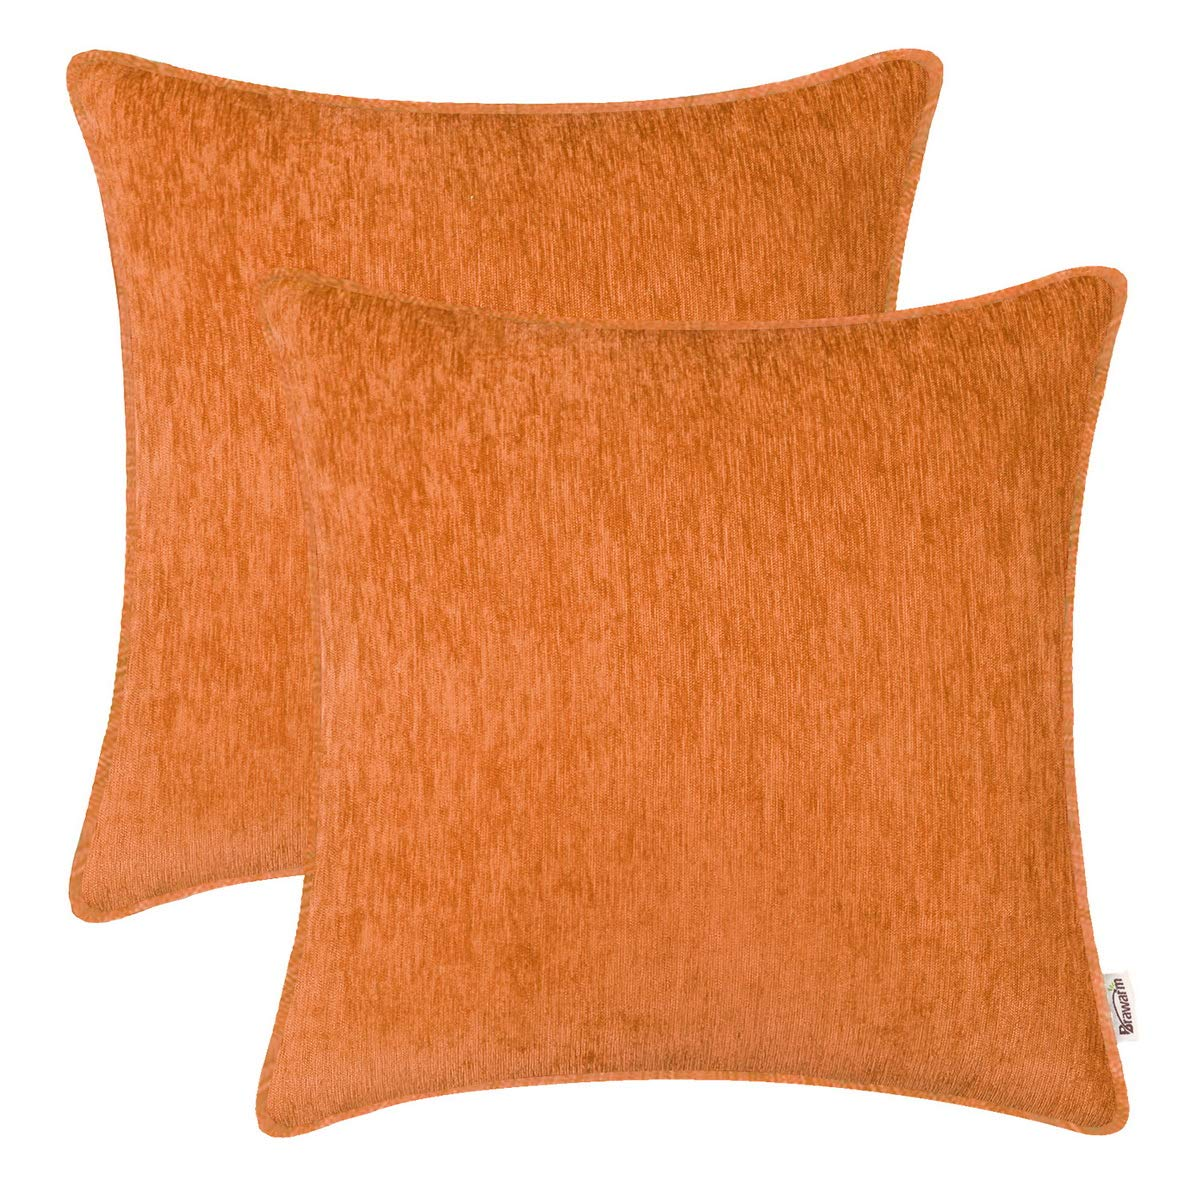 BRAWARM Pack of 2 Cozy Throw Pillow Covers Cases for Sofa Couch Home Decoration Solid Dyed Striped Soft Chenille with Piping 22 X 22 Inches Orange